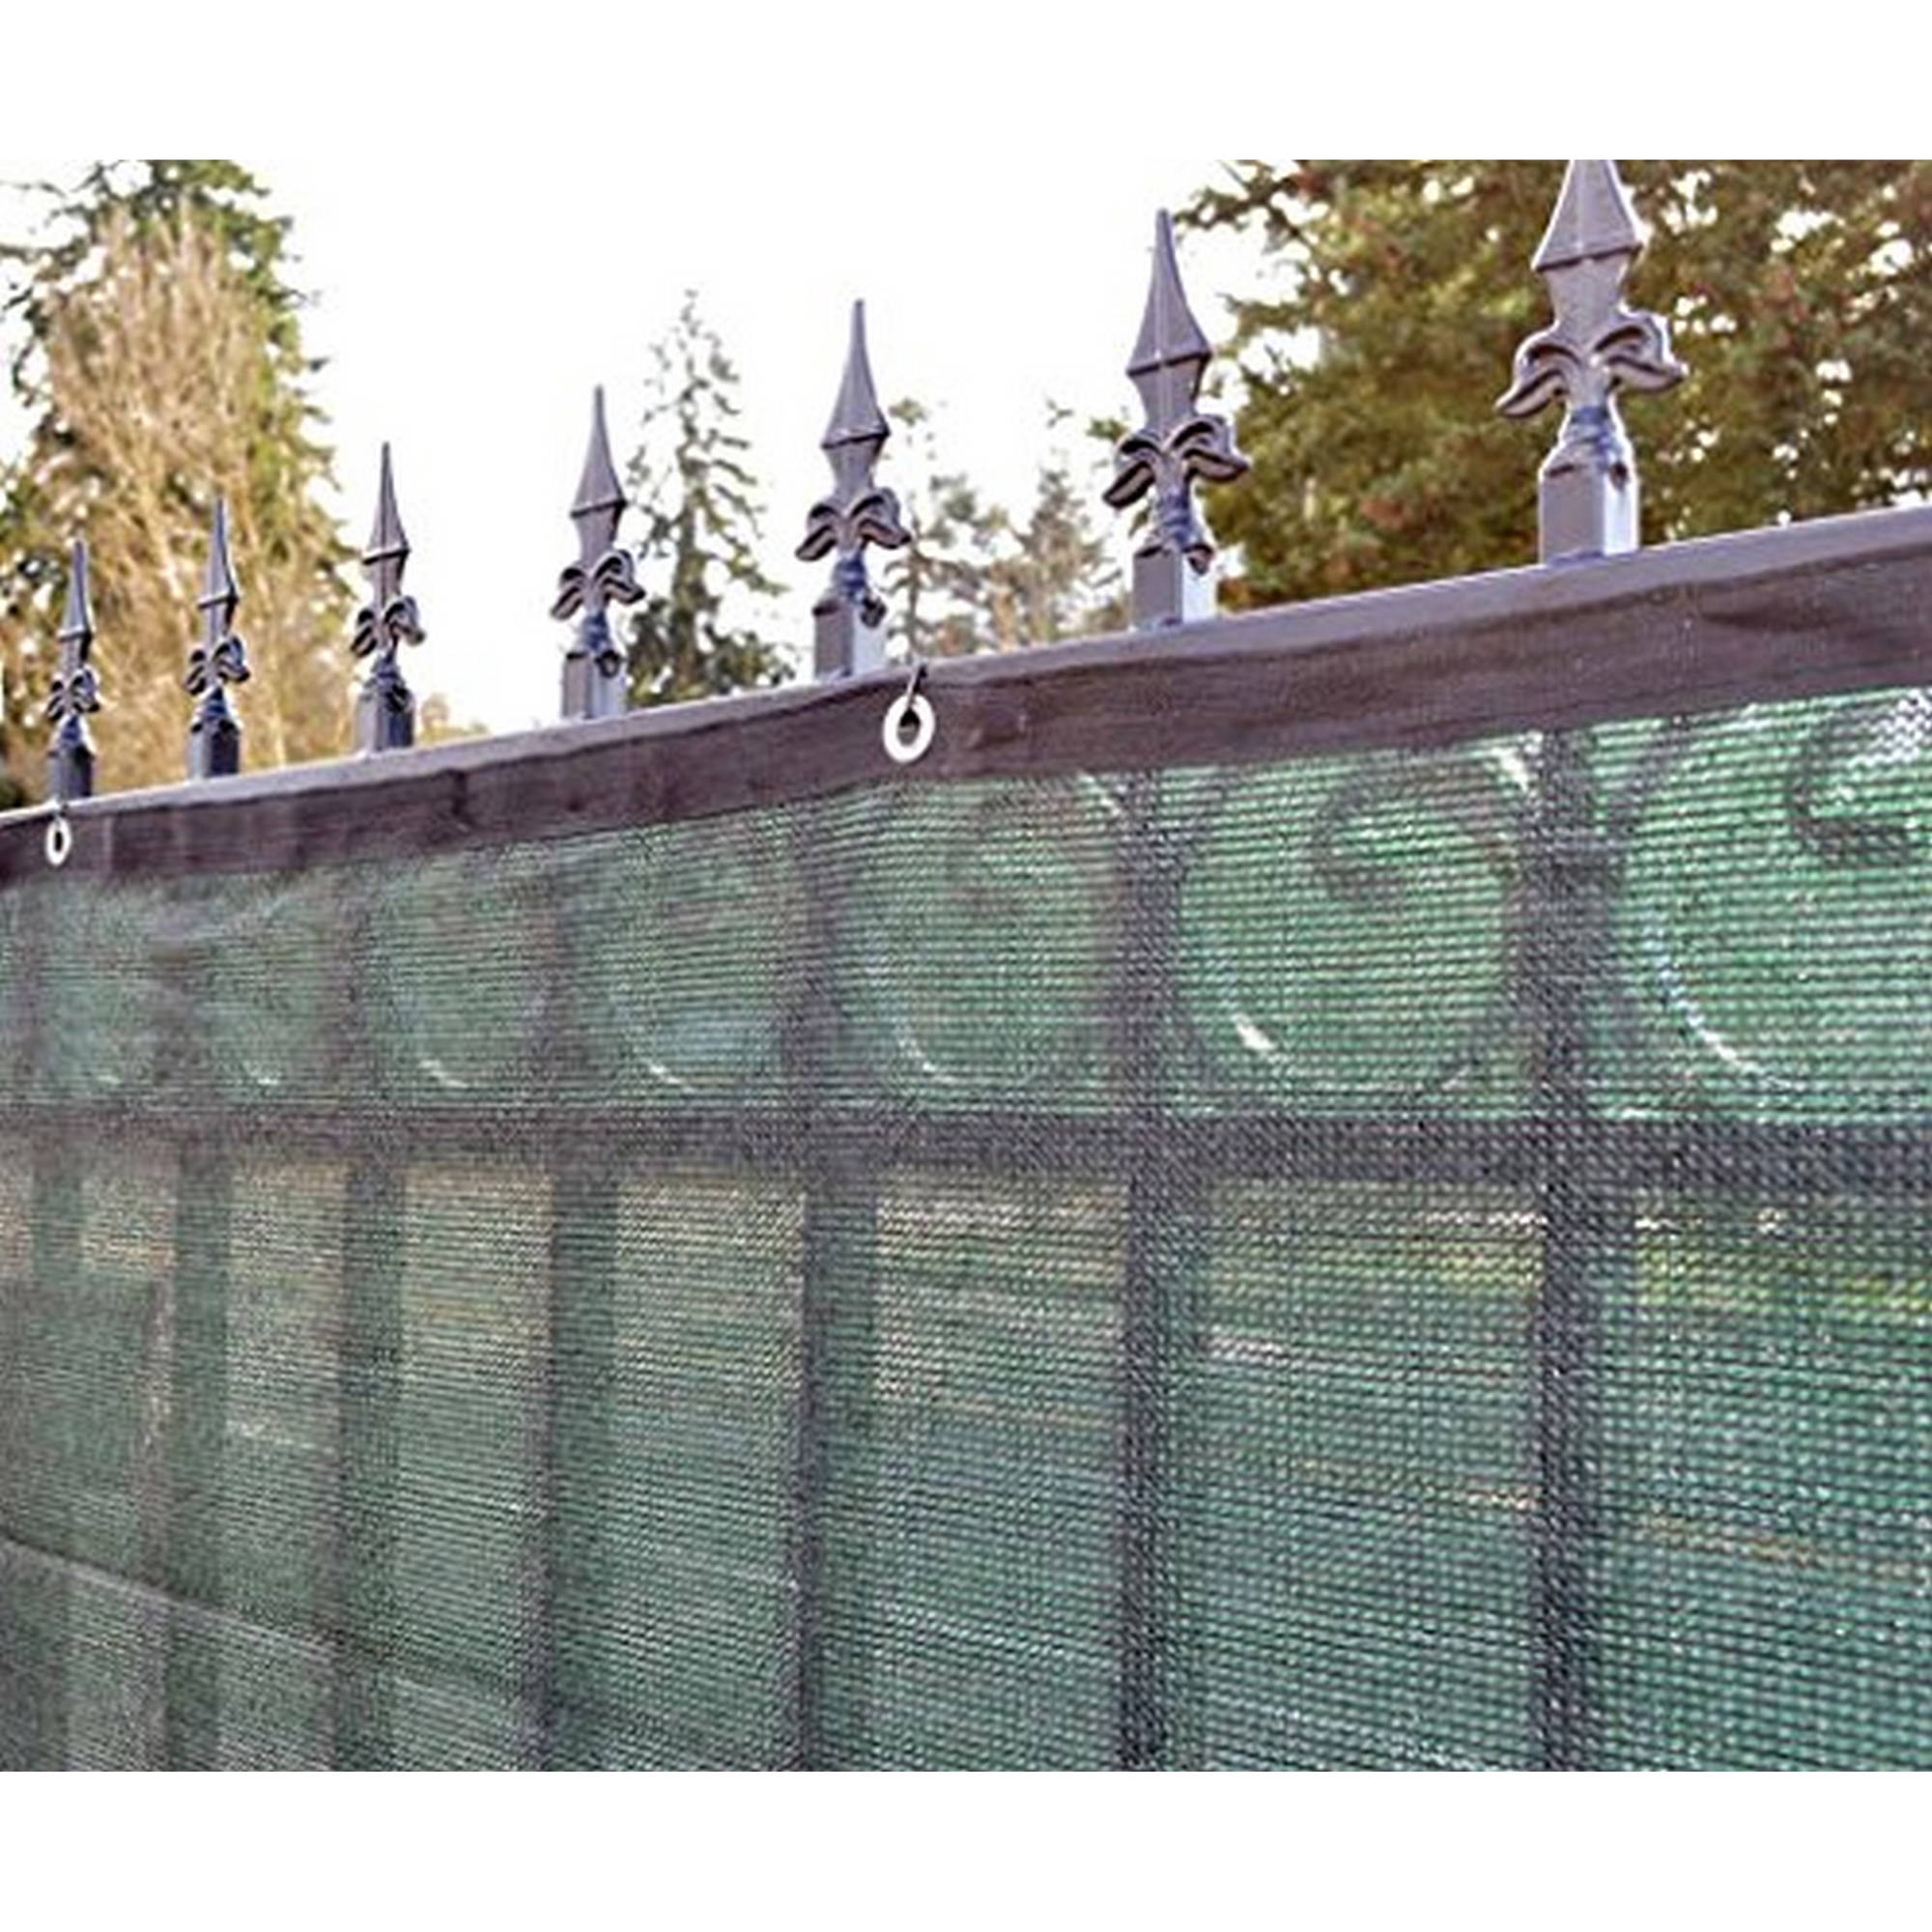 Elegant Aleko 6u0027 X 25u0027 Dark Green Fence Privacy Screen Windscreen Shade Cover Mesh  Fabric